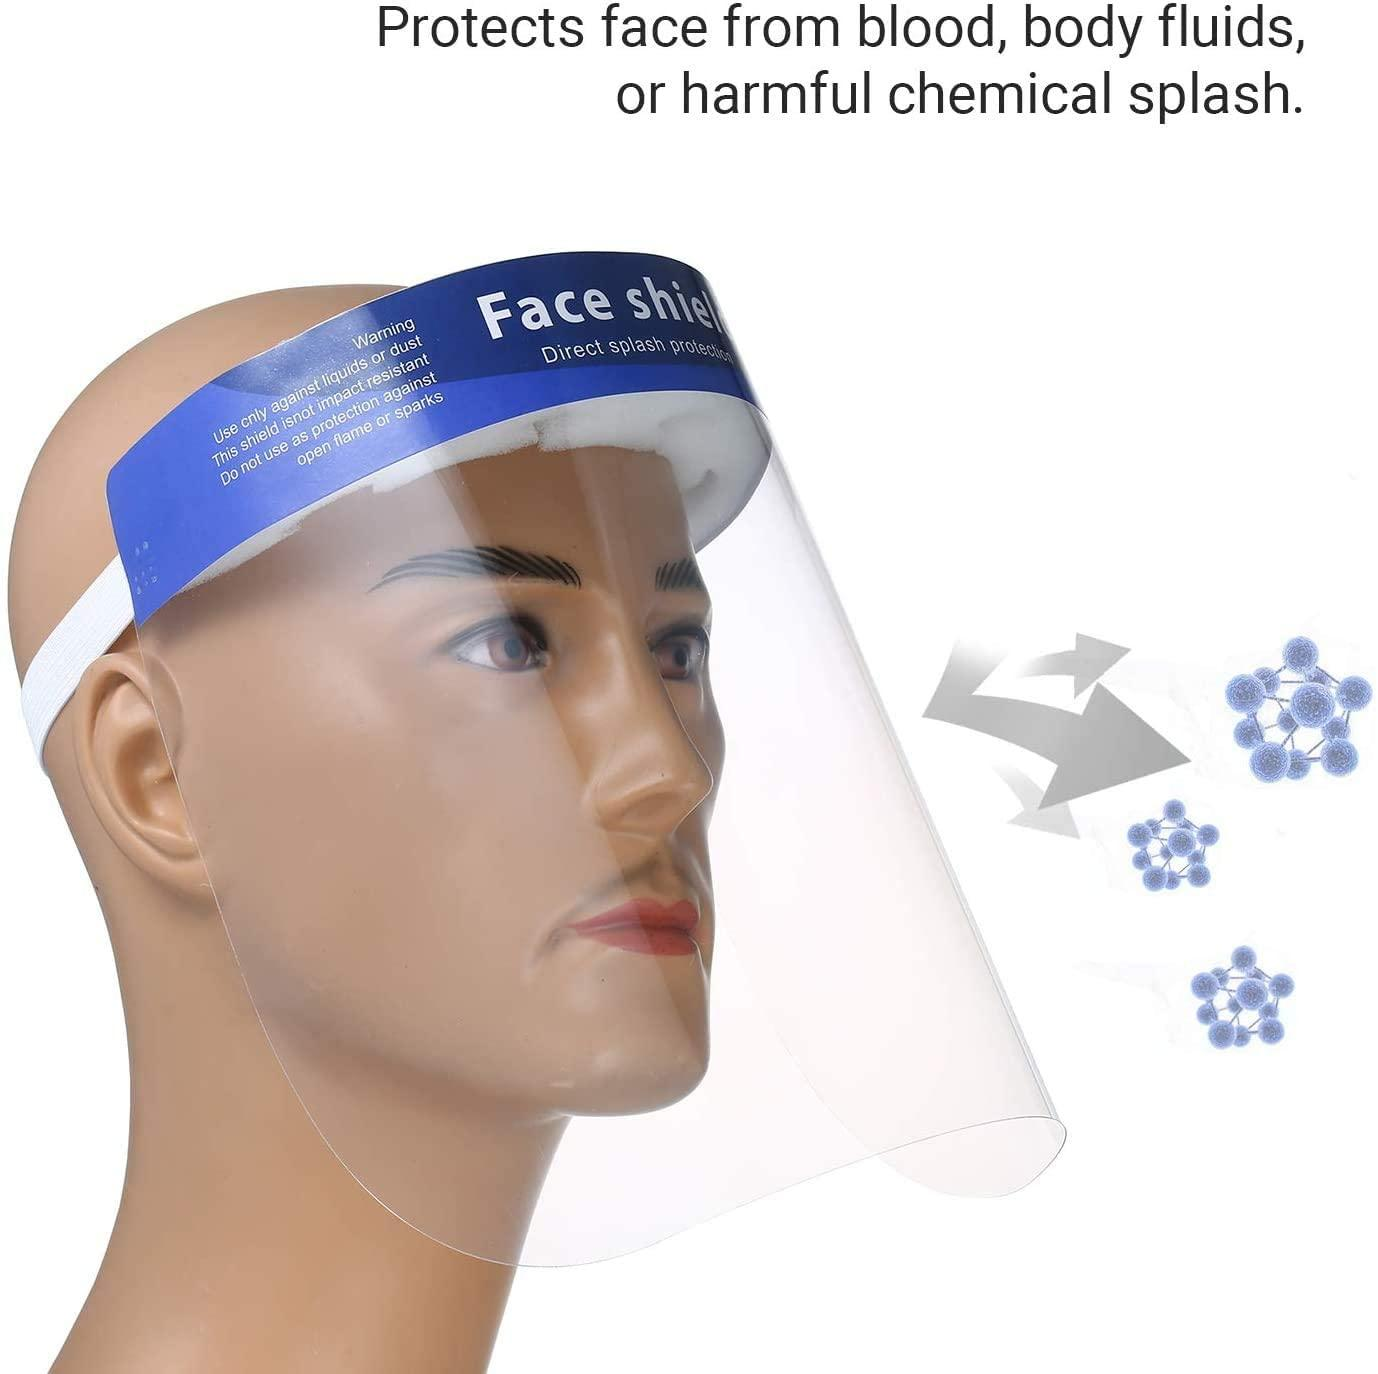 100PCS FDA Approved Face Shield with Protective Clear Film Protect Eyes and Face